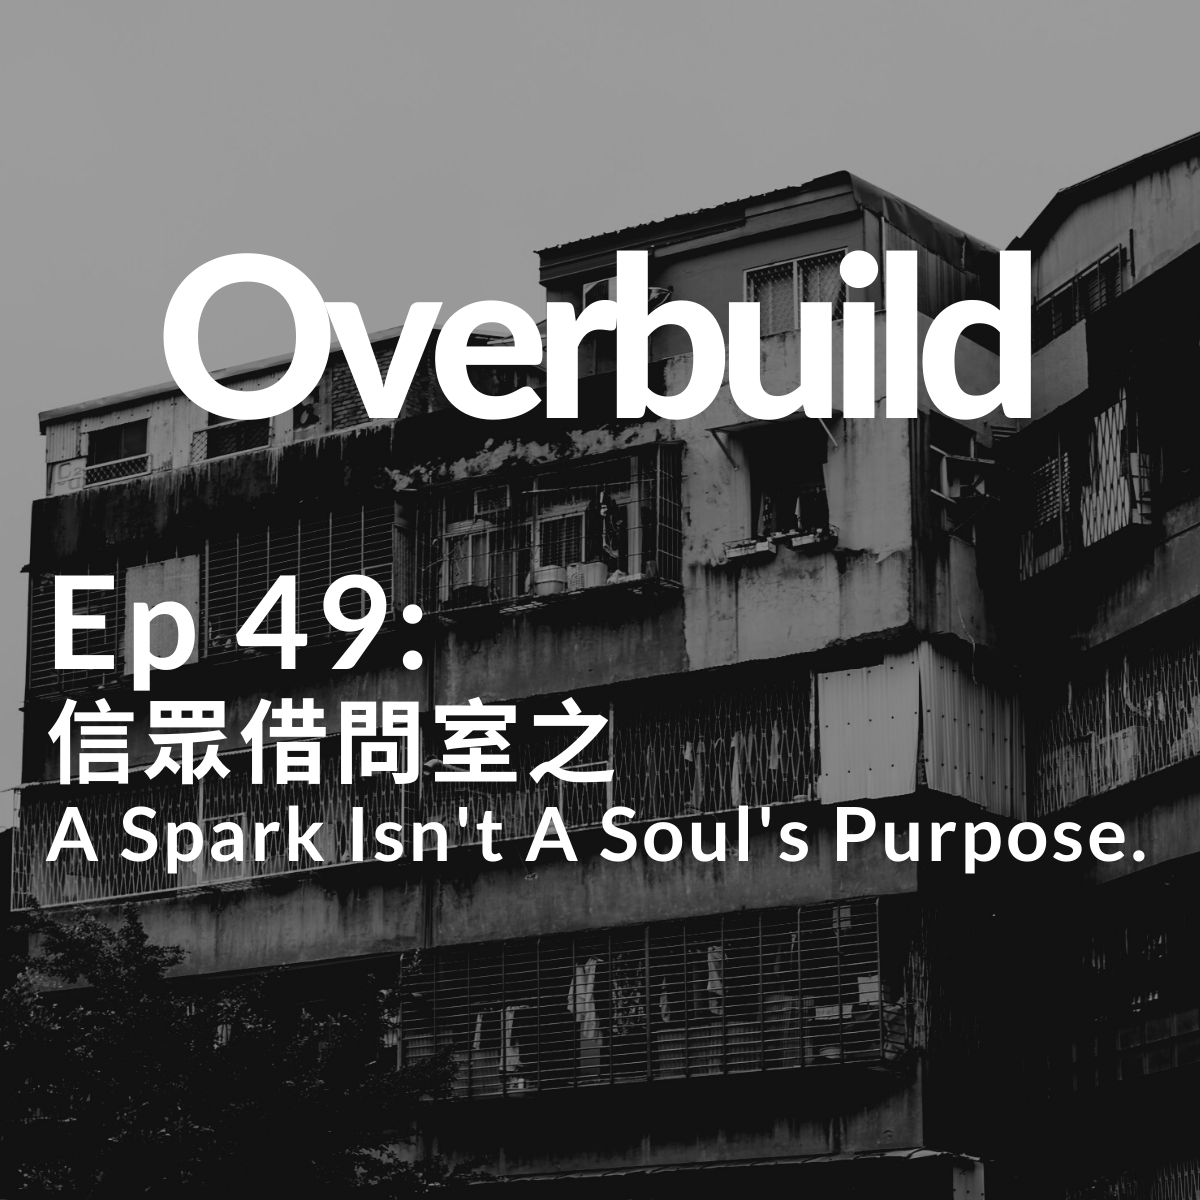 Ep 49: 信眾借問室之 A Spark Isn't A Soul's Purpose.